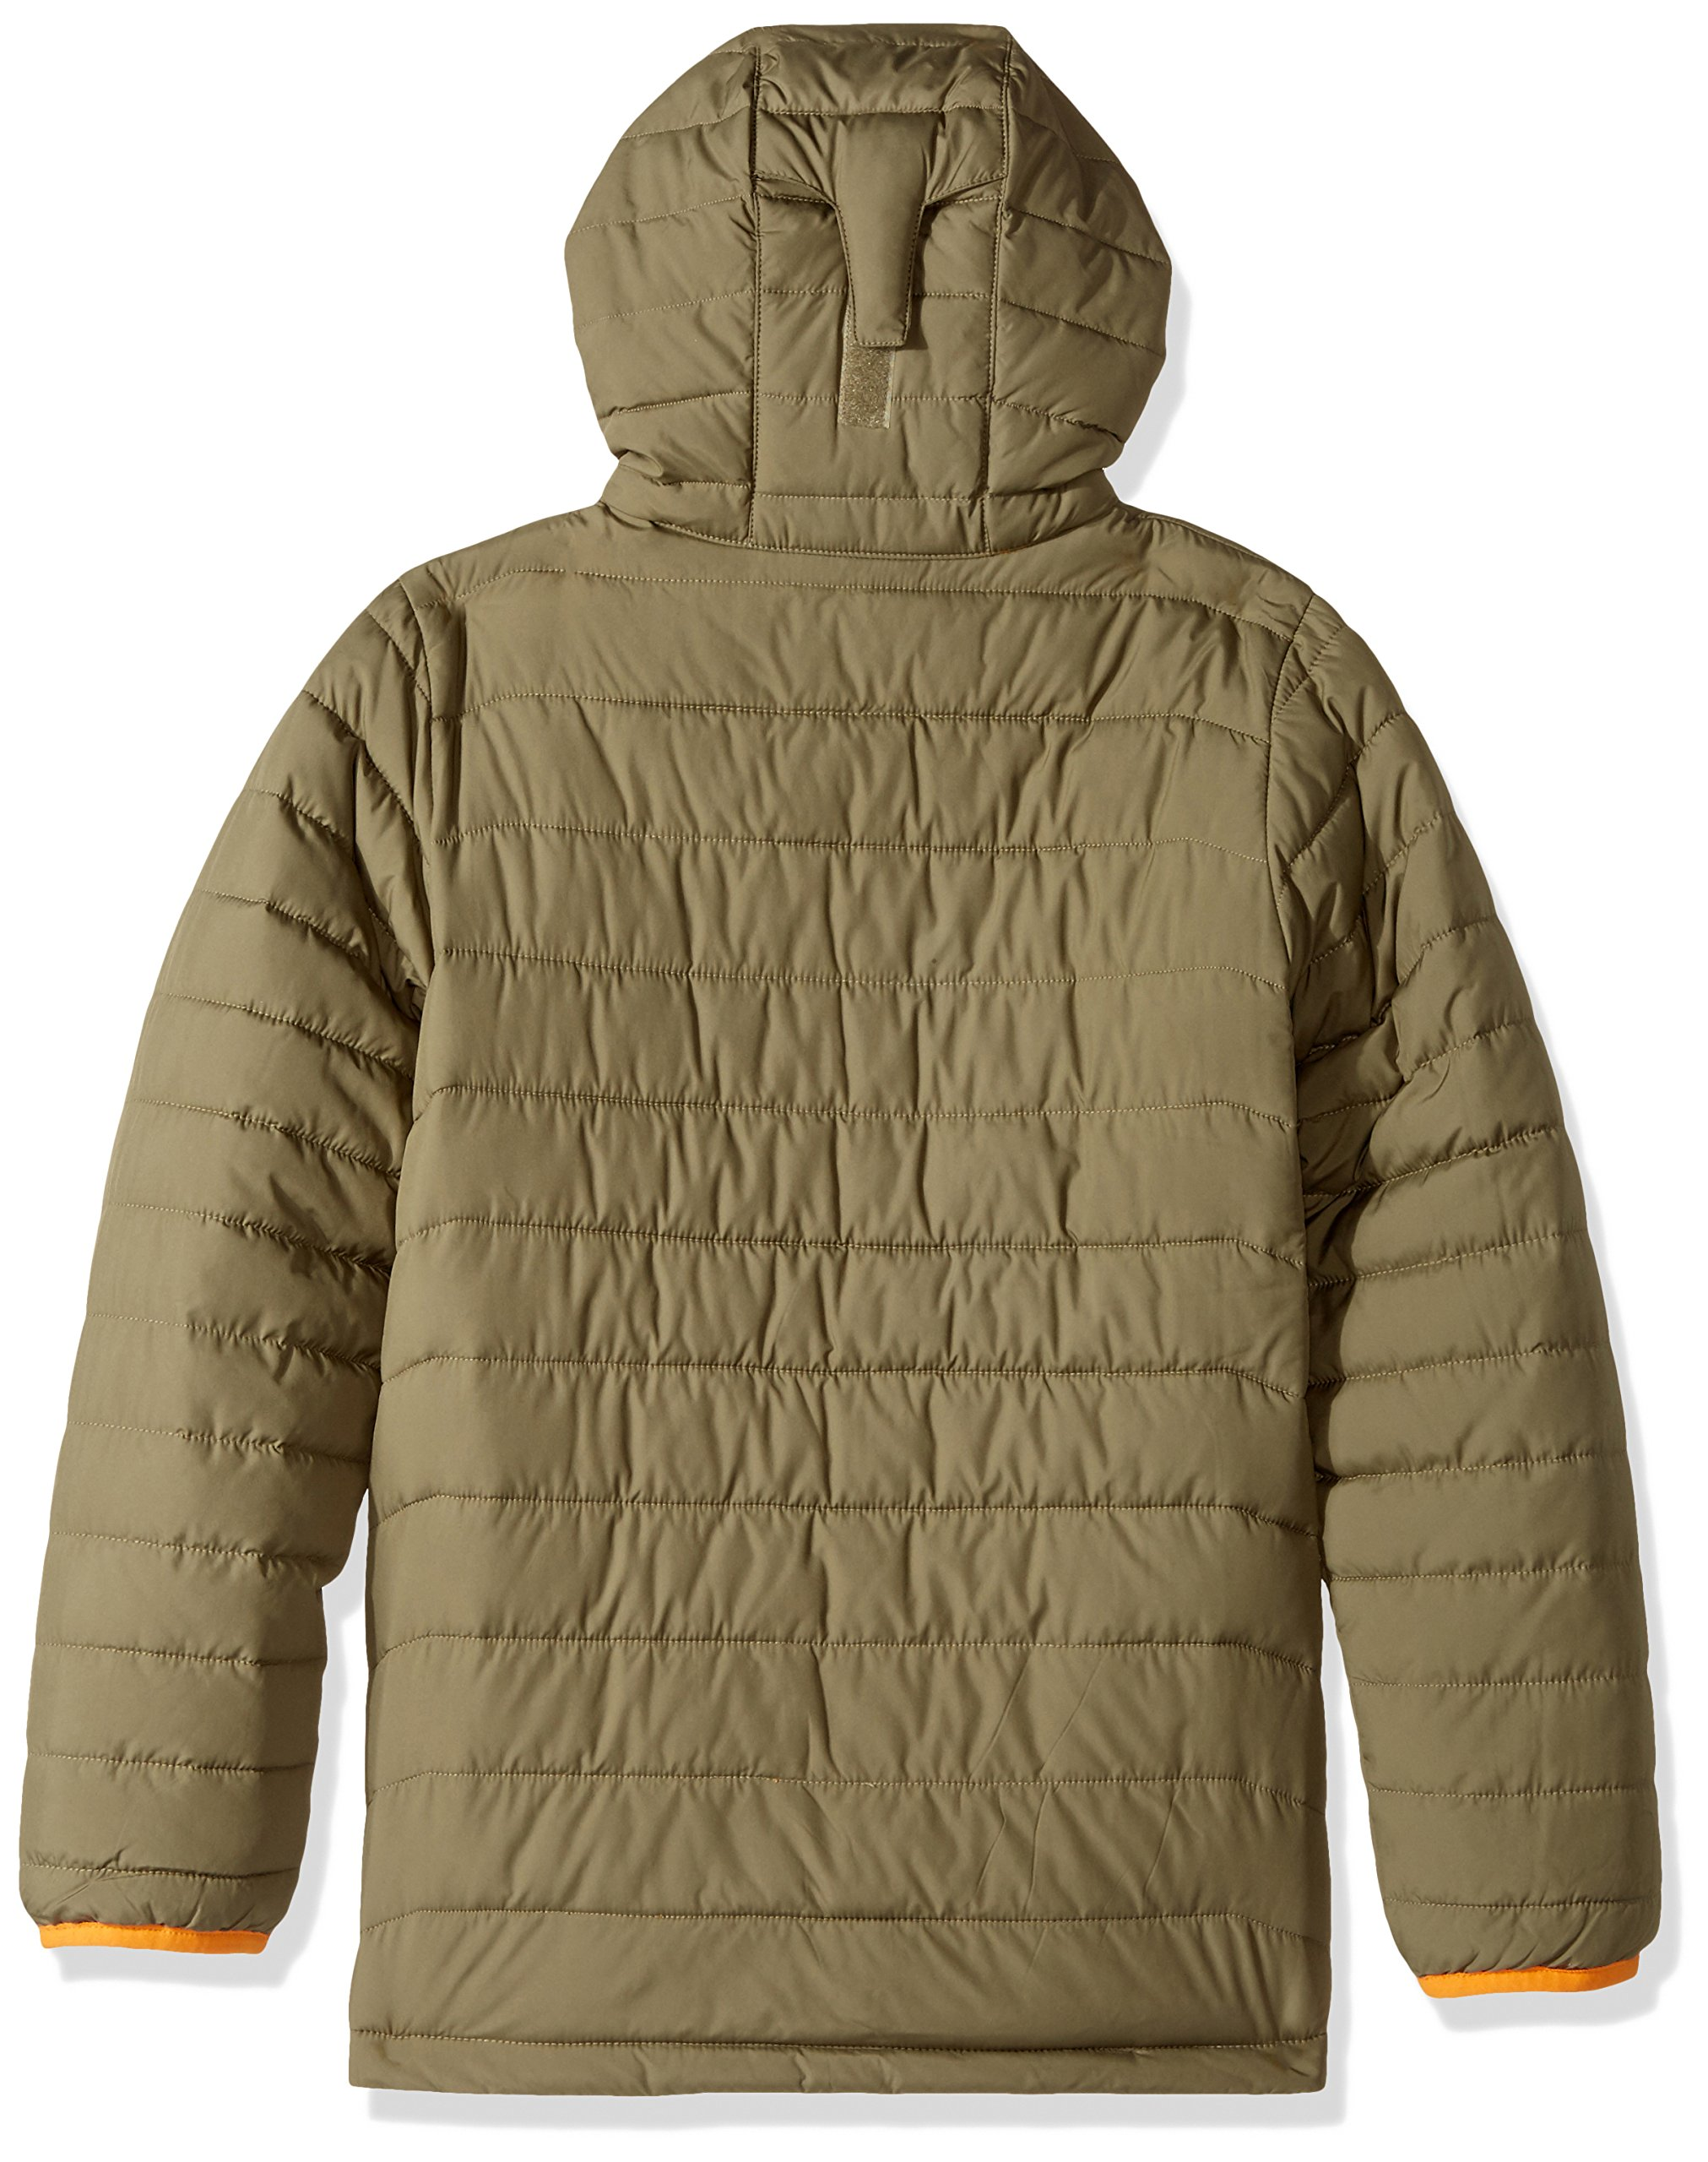 Columbia Big Boys' Powder Lite Puffer Jacket, Sage, Small by Columbia (Image #2)